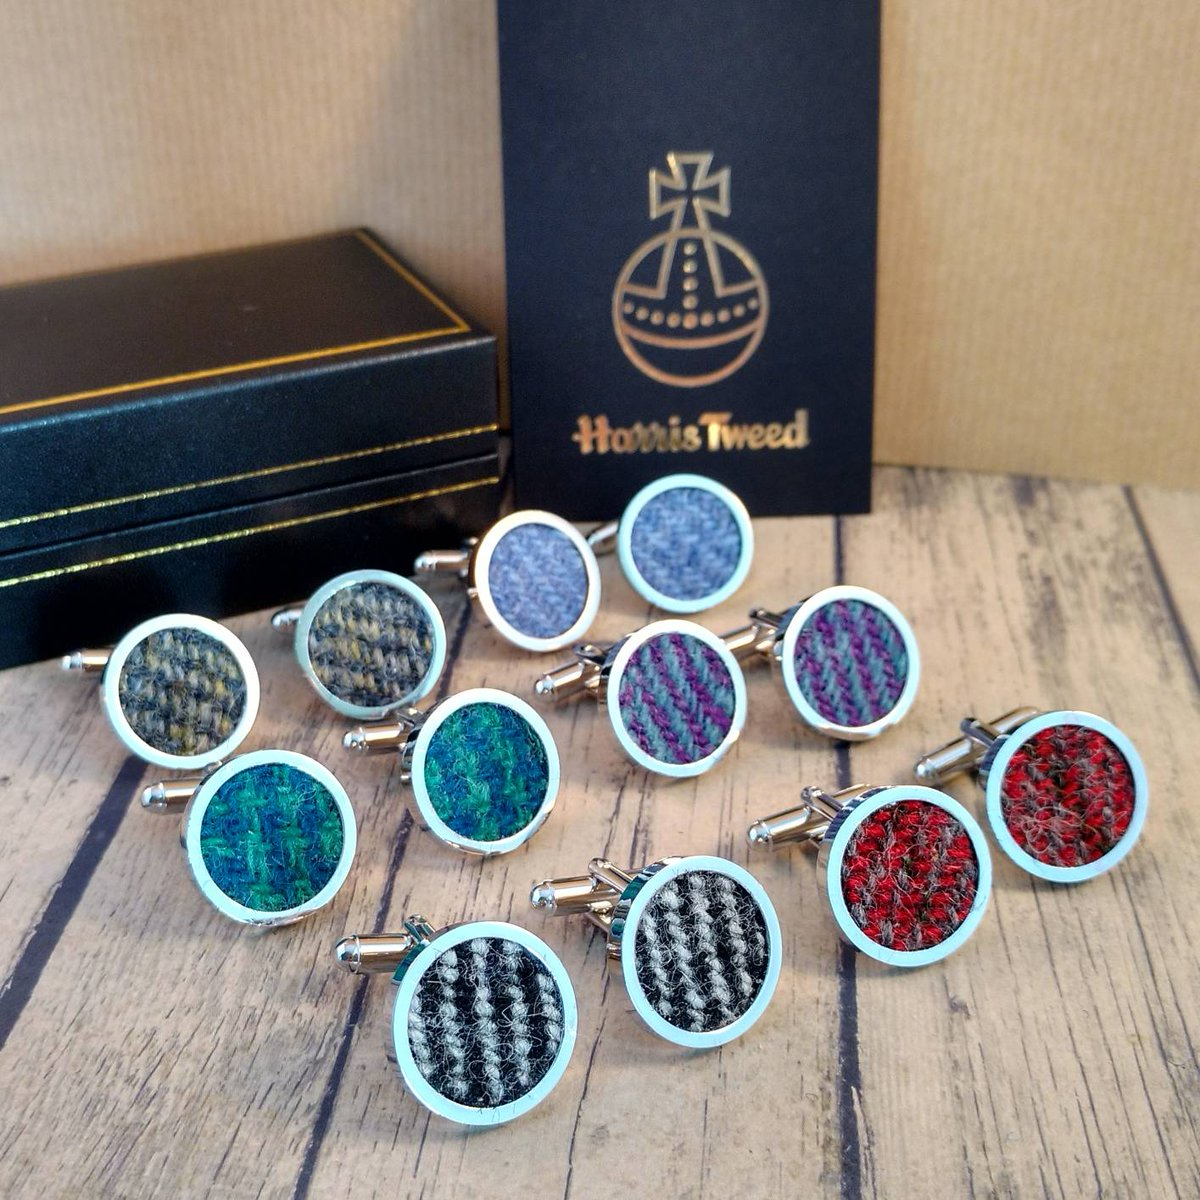 Cufflinks in a range of Harris Tweed colours. Perfect #FathersDay or #wedding gifts. Available from my Etsy shop.  https://www. etsy.com/uk/listing/582 183594/cufflinks-harris-tweed-cufflinks-for &nbsp; …  #HandmadeHour #shopscotland #ihsetsyteam #mensfashion #etsyseller <br>http://pic.twitter.com/GFVl29SvSV